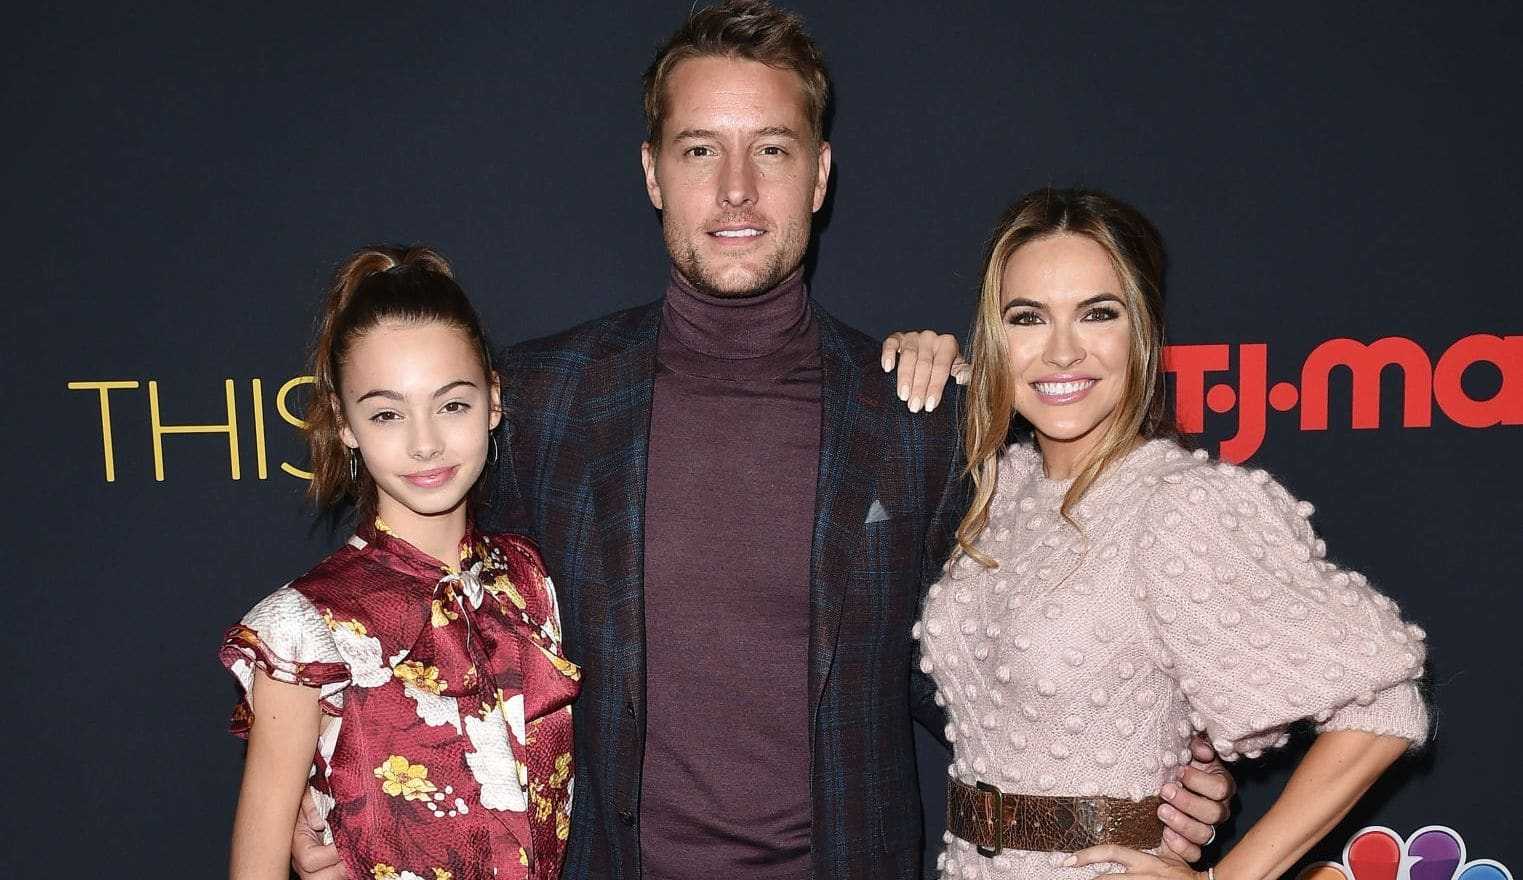 Isabella, Justice Hartley and Chrishell Stause